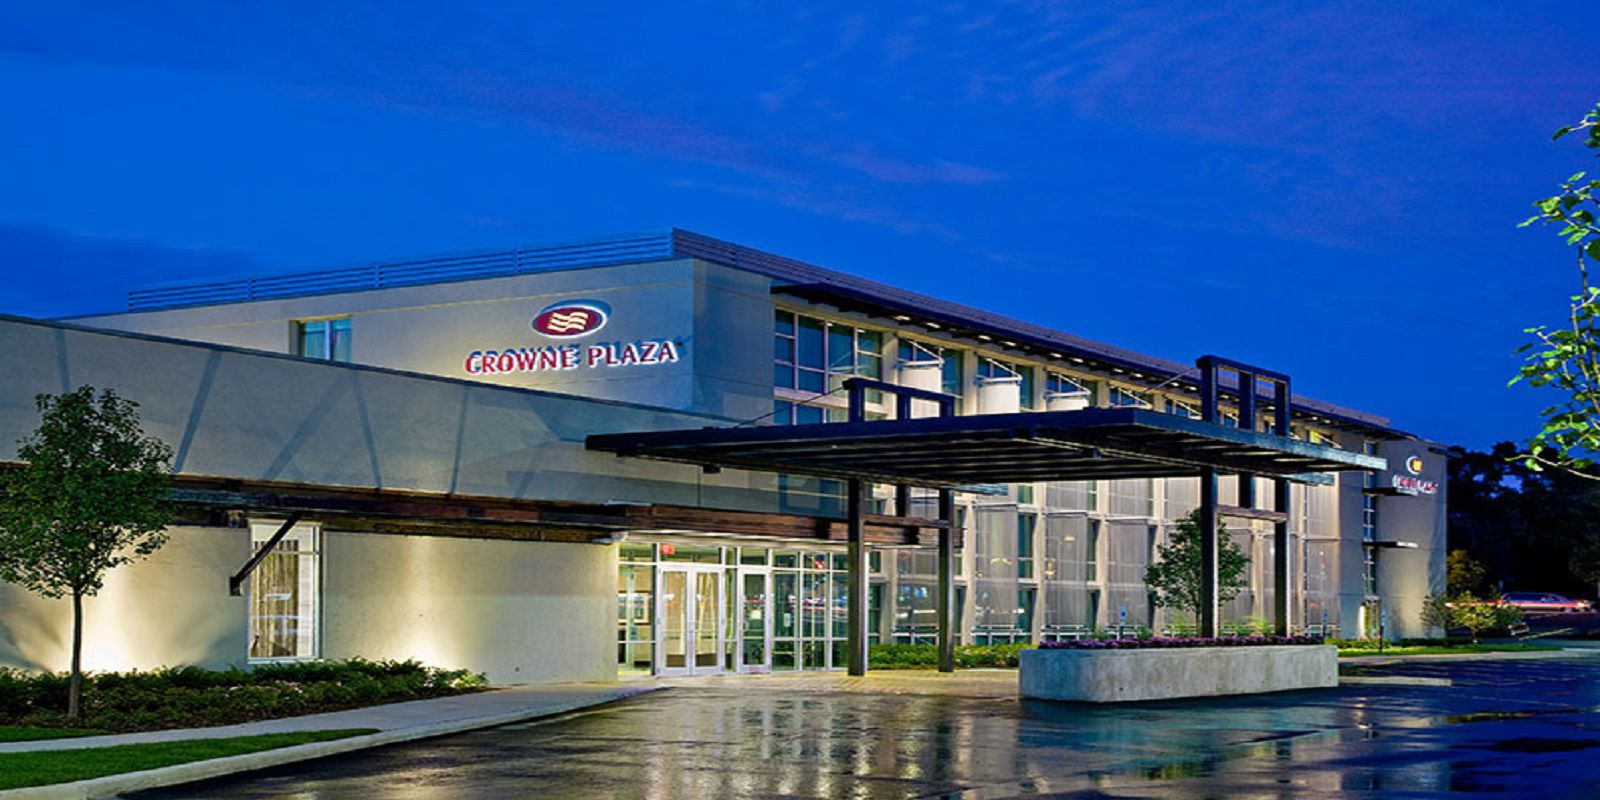 Crowne plaza knoxville downtown university in